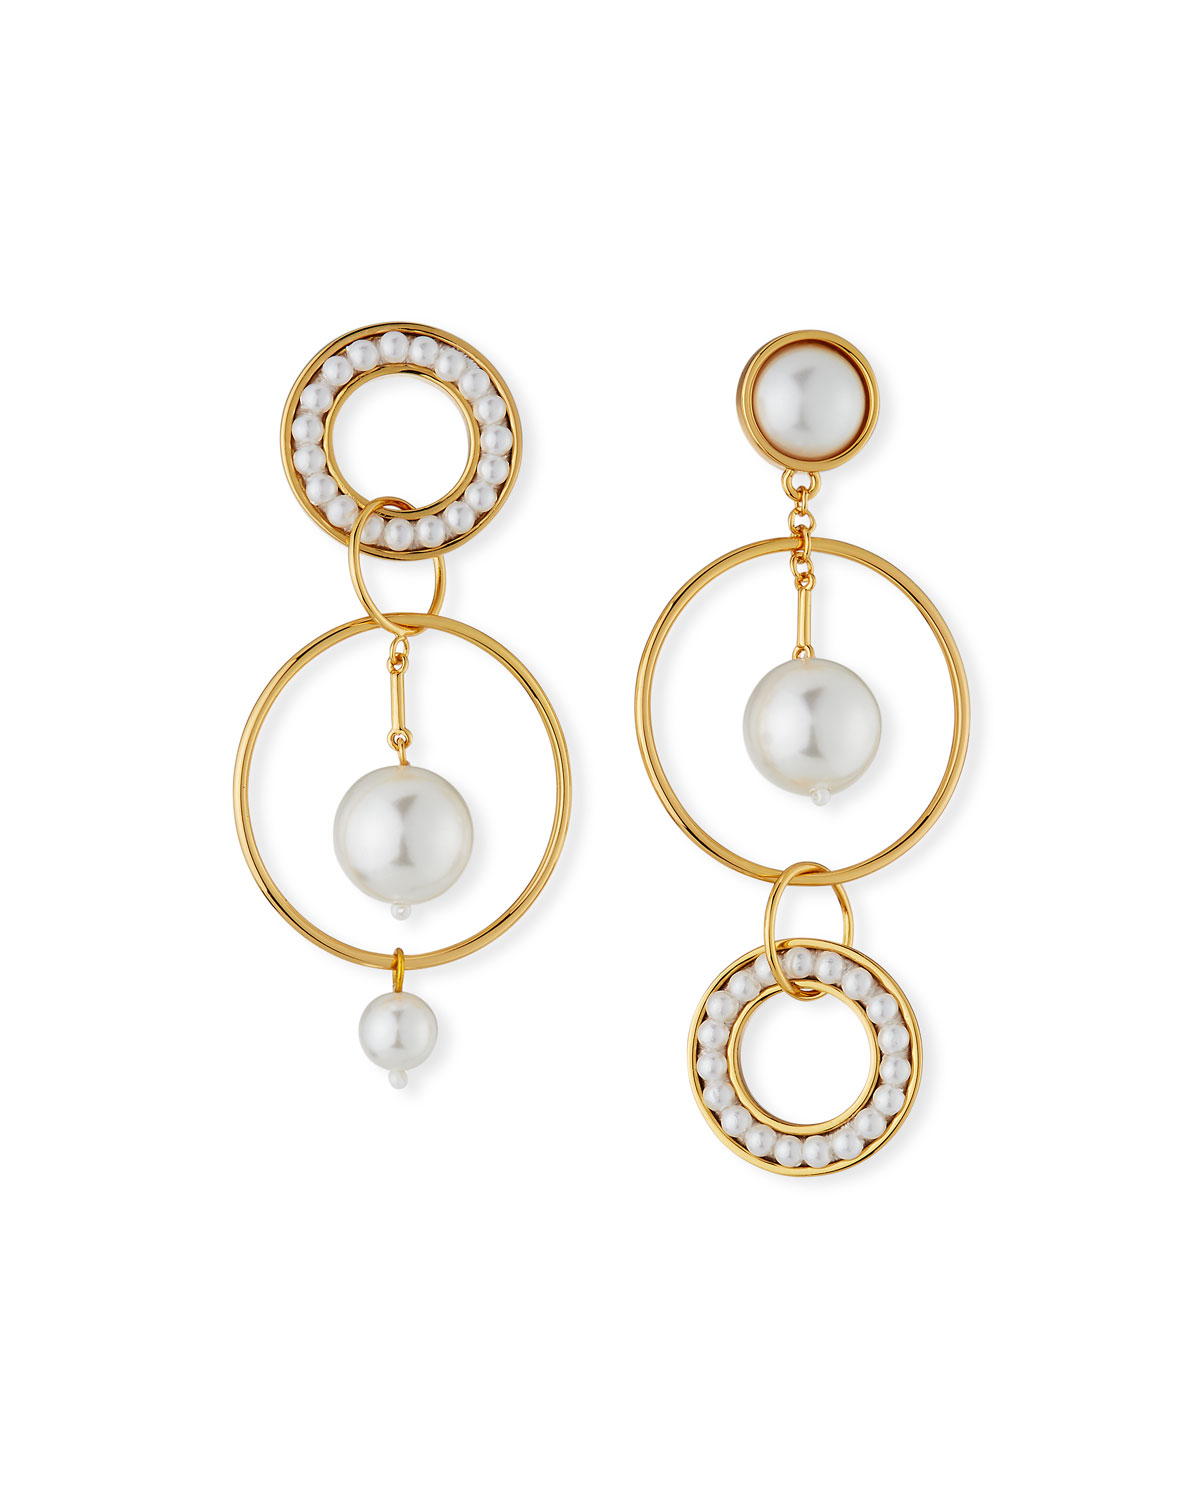 Mignonne Gavigan MIKA MISMATCH EARRINGS